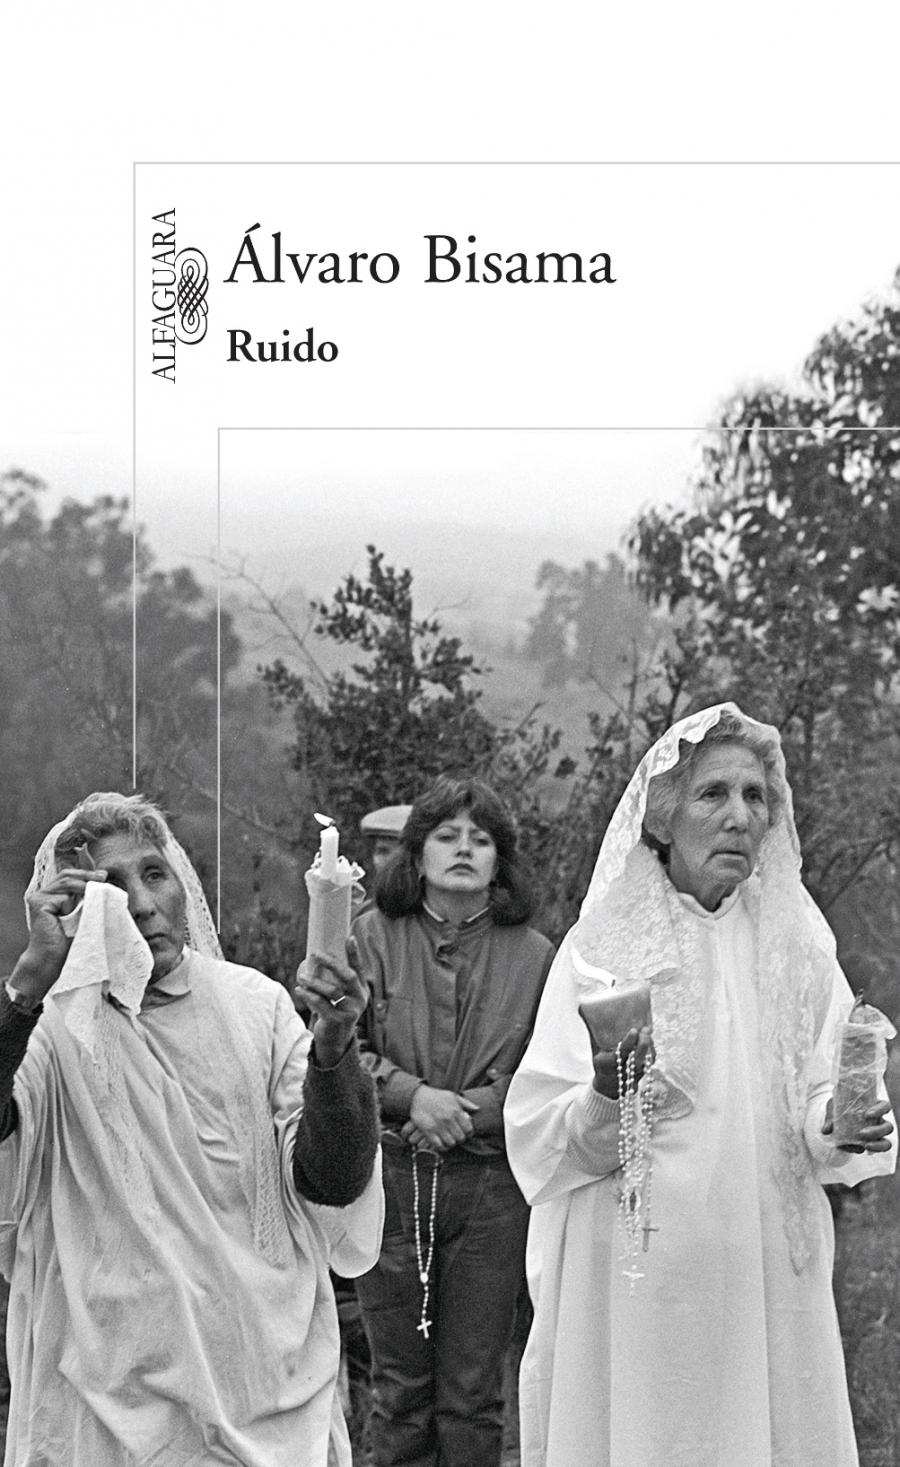 Álvaro Bisama's novel 'Ruido' or 'Noise' in English.